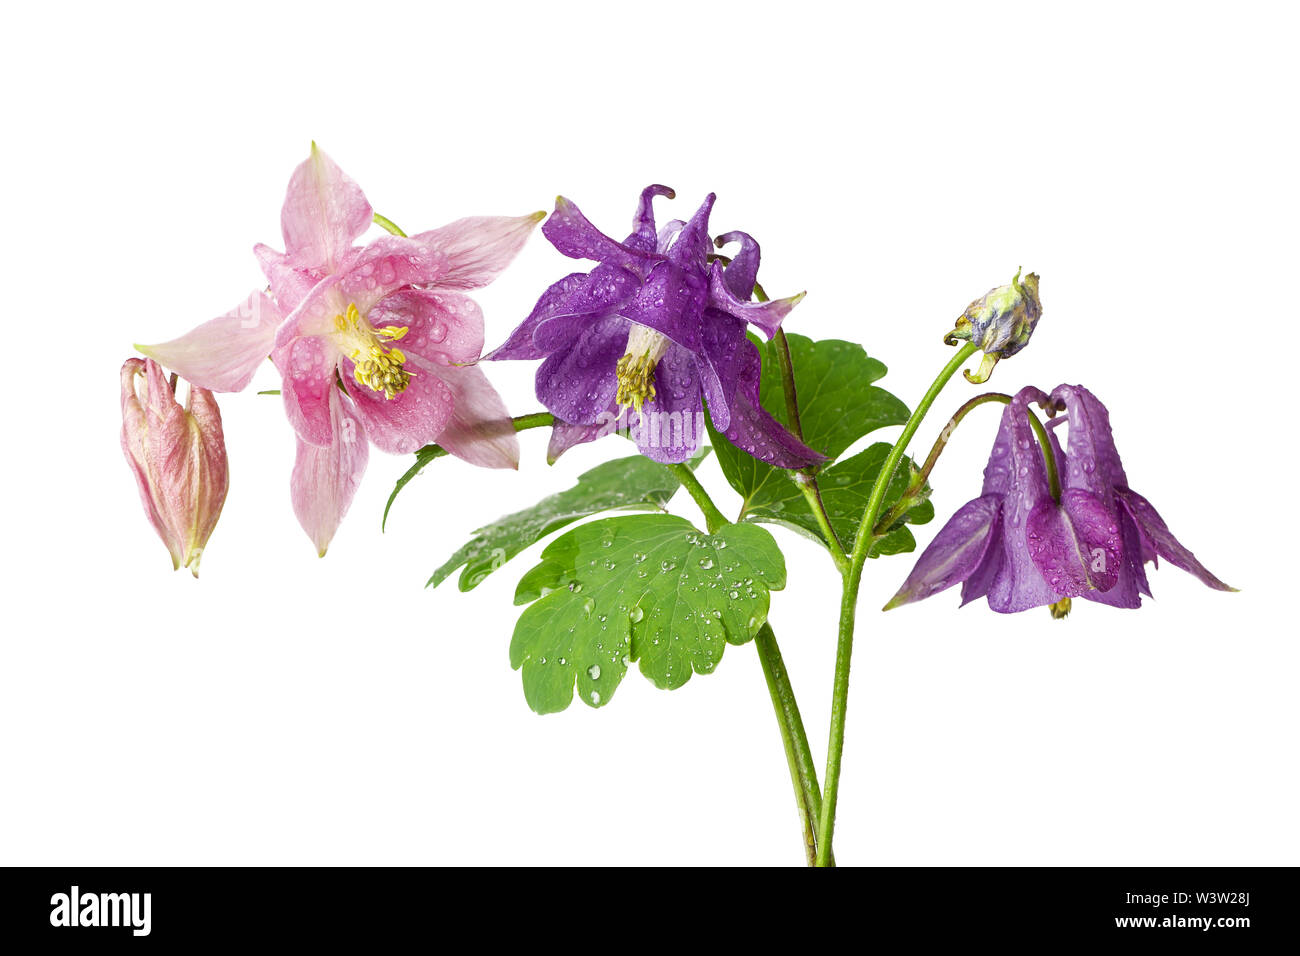 Beautiful flowers of aquilegia plant pink and lila colors isolated on white background - Stock Image